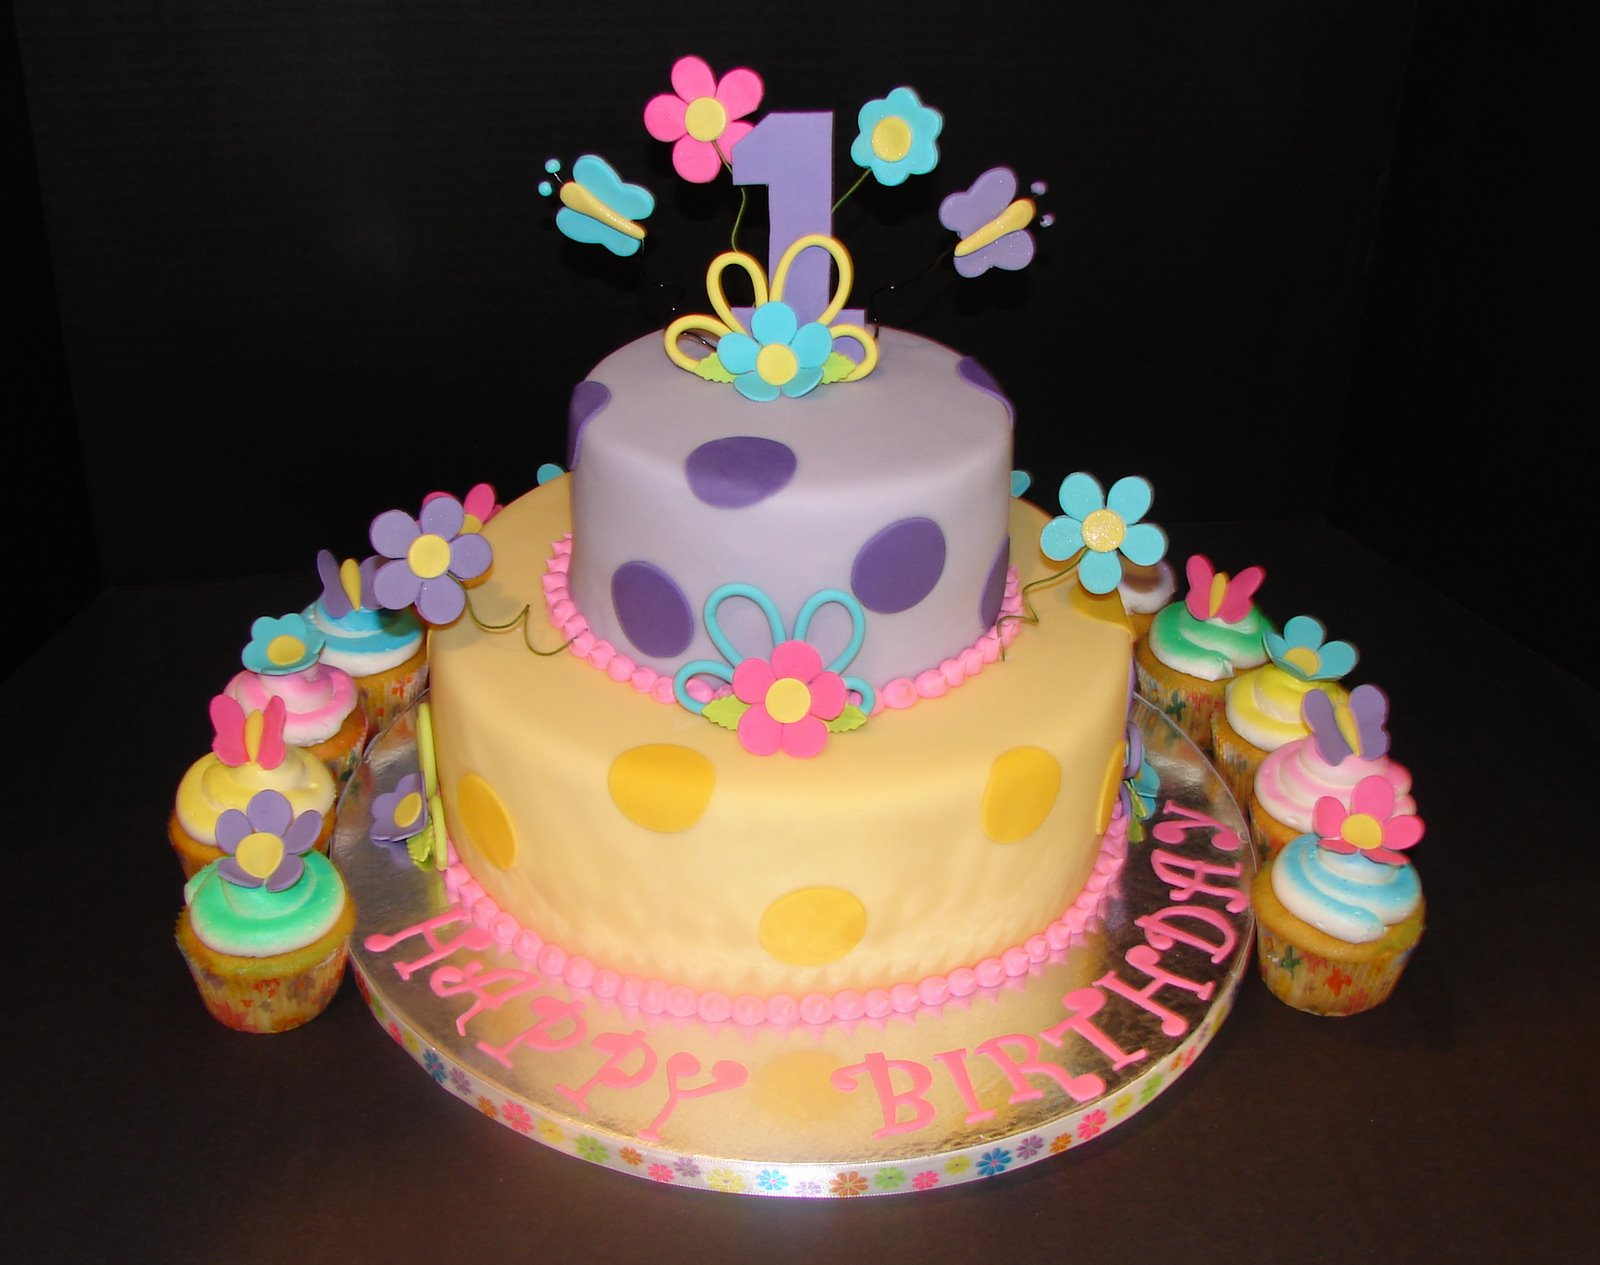 Teenage Girl Cake Images : teenage girl birthday cakes Cake Photos